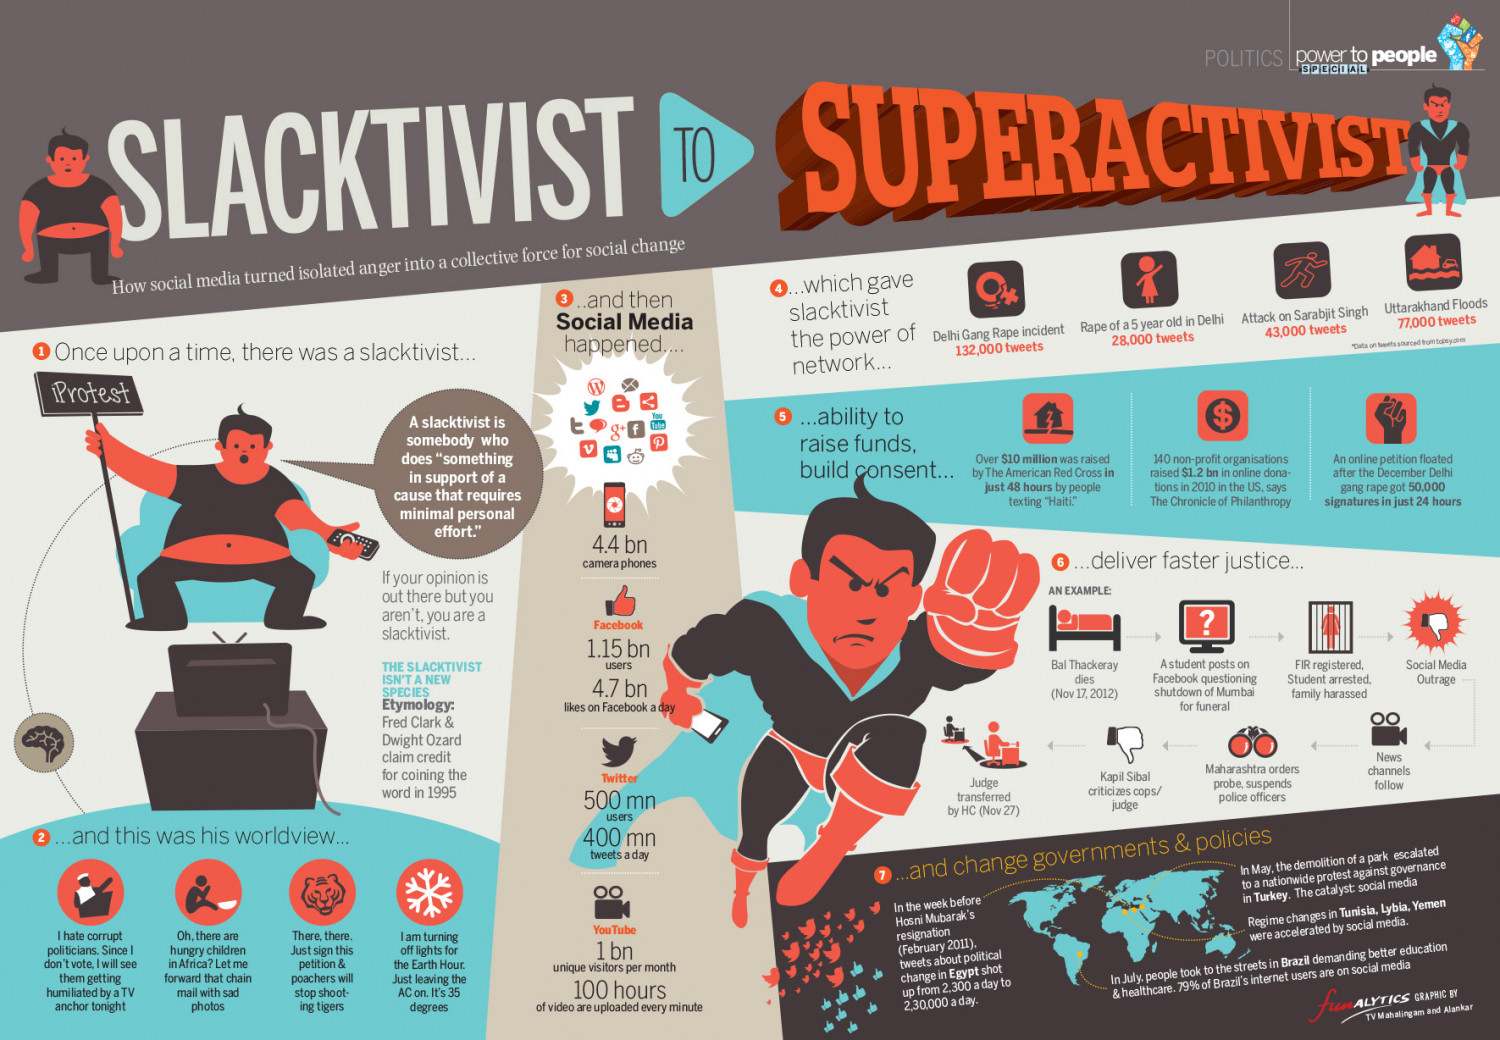 How Slacktivist Became Superactivist Infographic